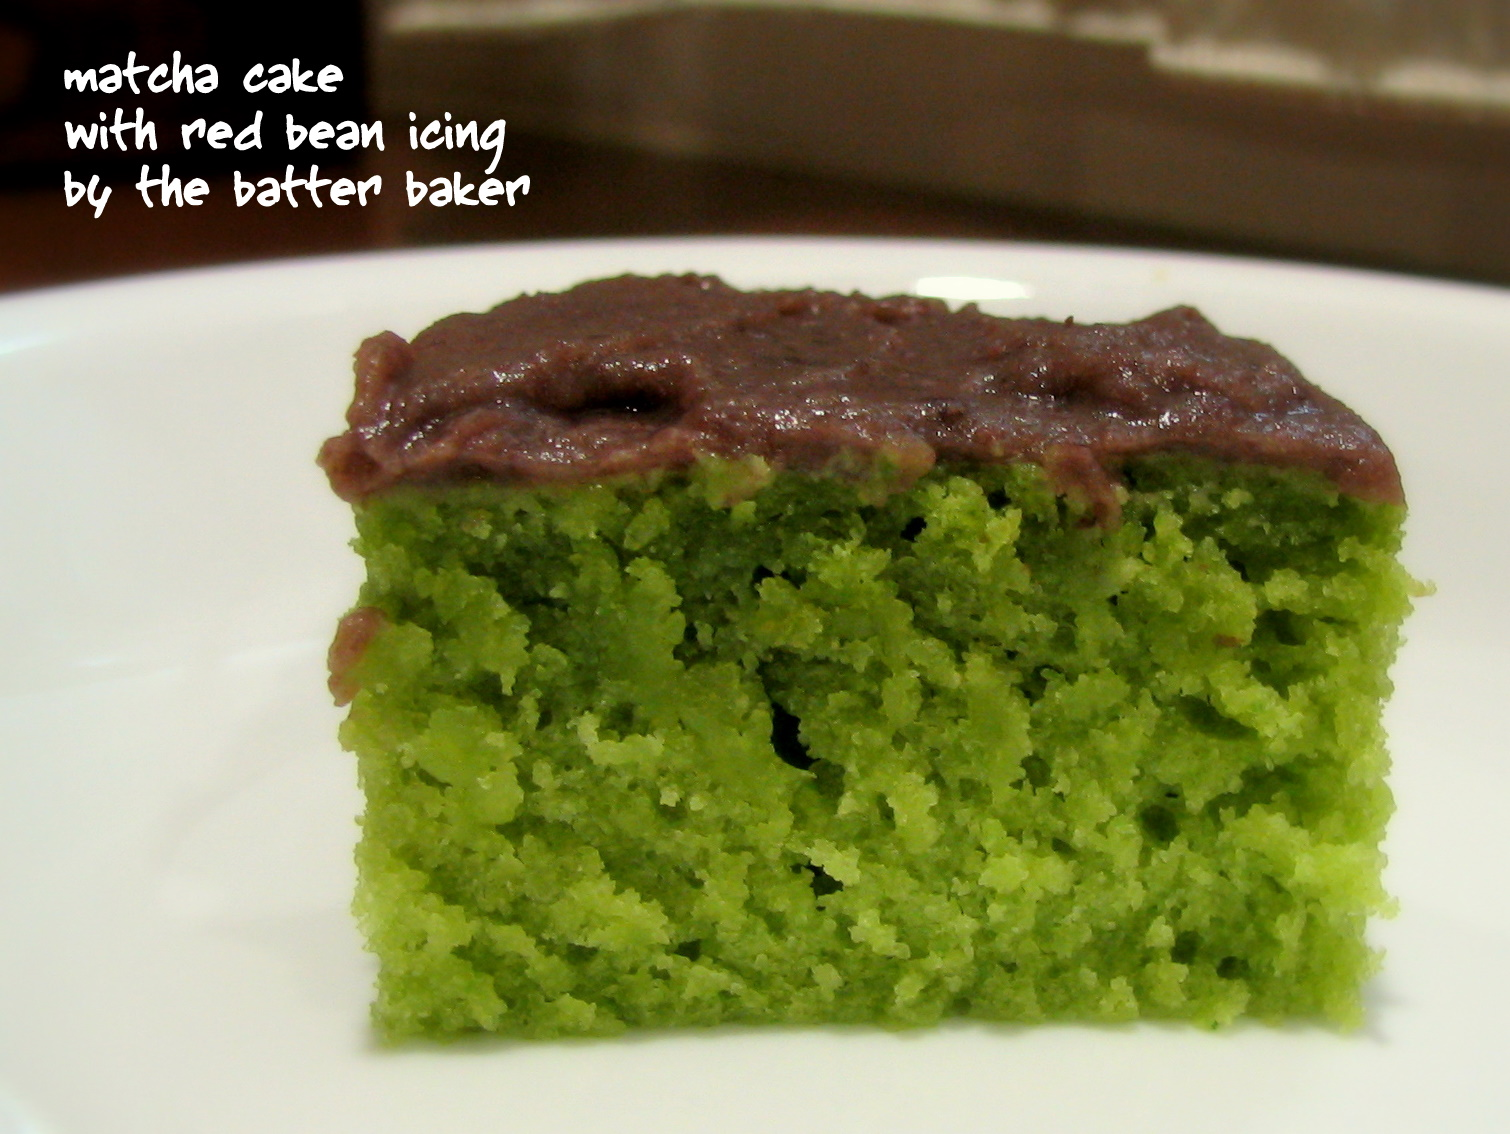 the batter baker matcha cake with red bean icing. Black Bedroom Furniture Sets. Home Design Ideas